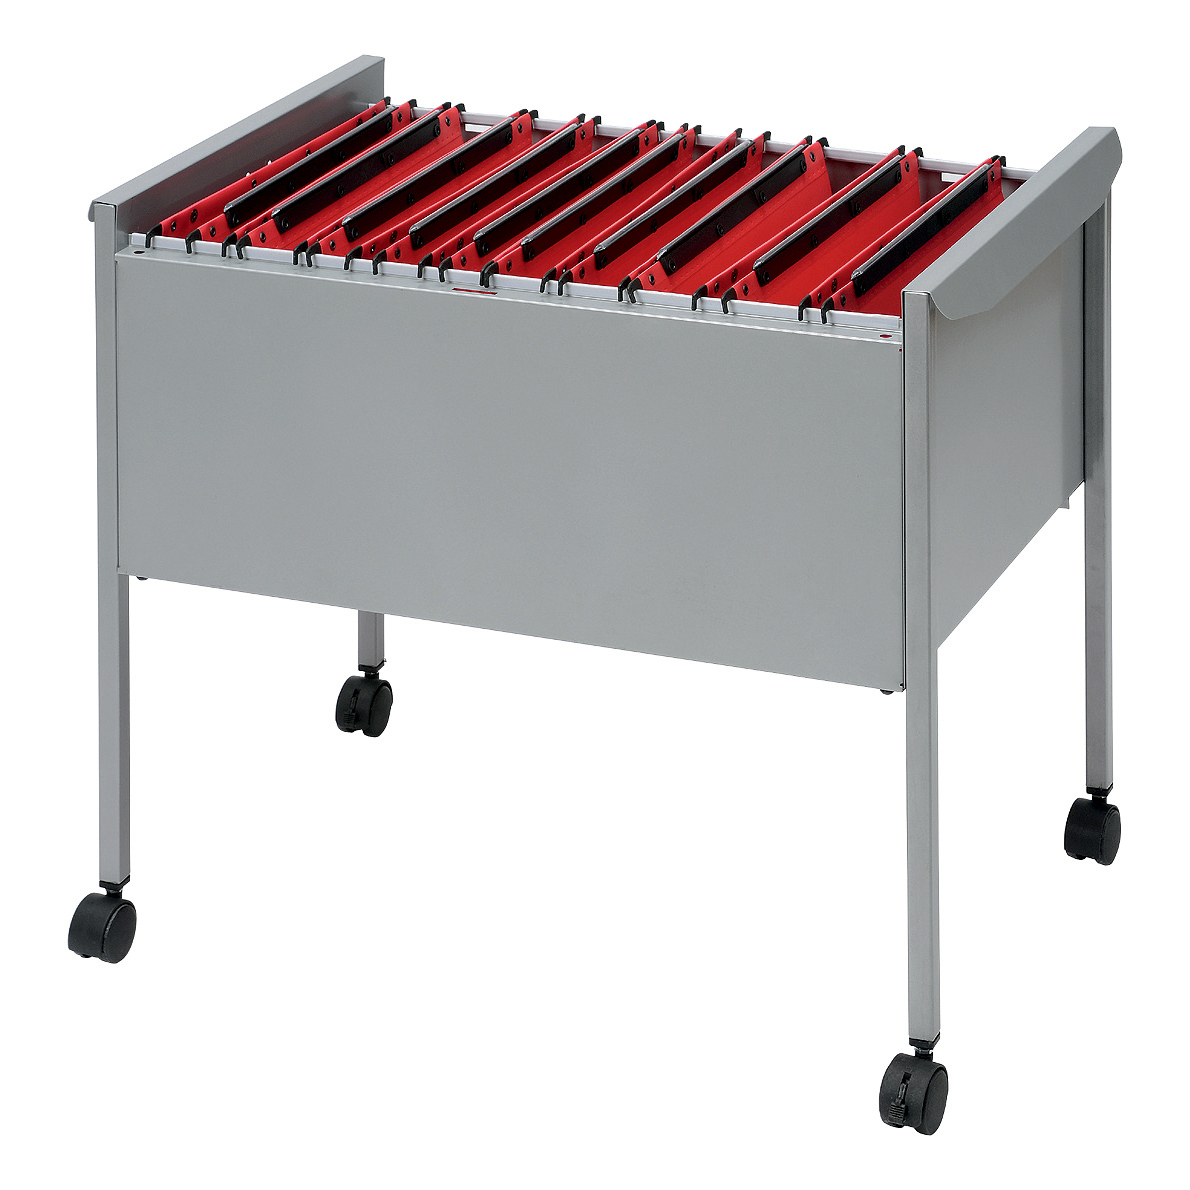 Stacking Chair Trolleys Rexel Suspension Filing Trolley Capacity 100 Susp Files W660xD425xH590mm Grey Ref 50559